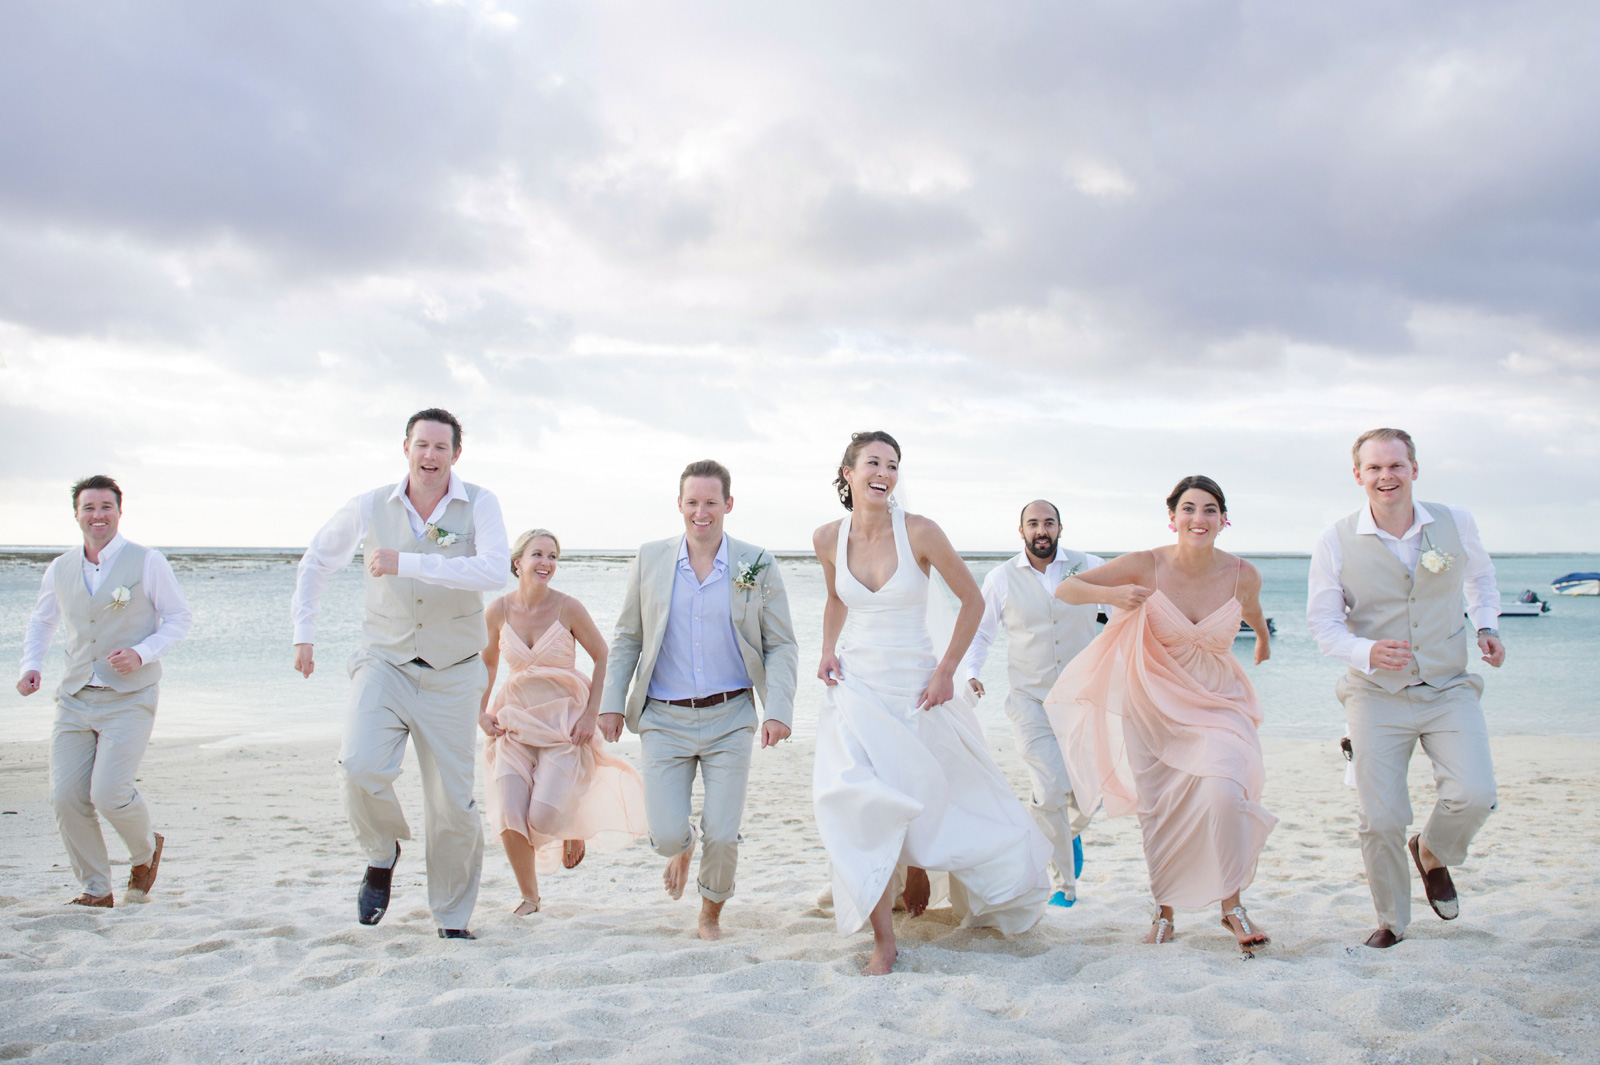 Bridal party on Mauritius Beach fun photo